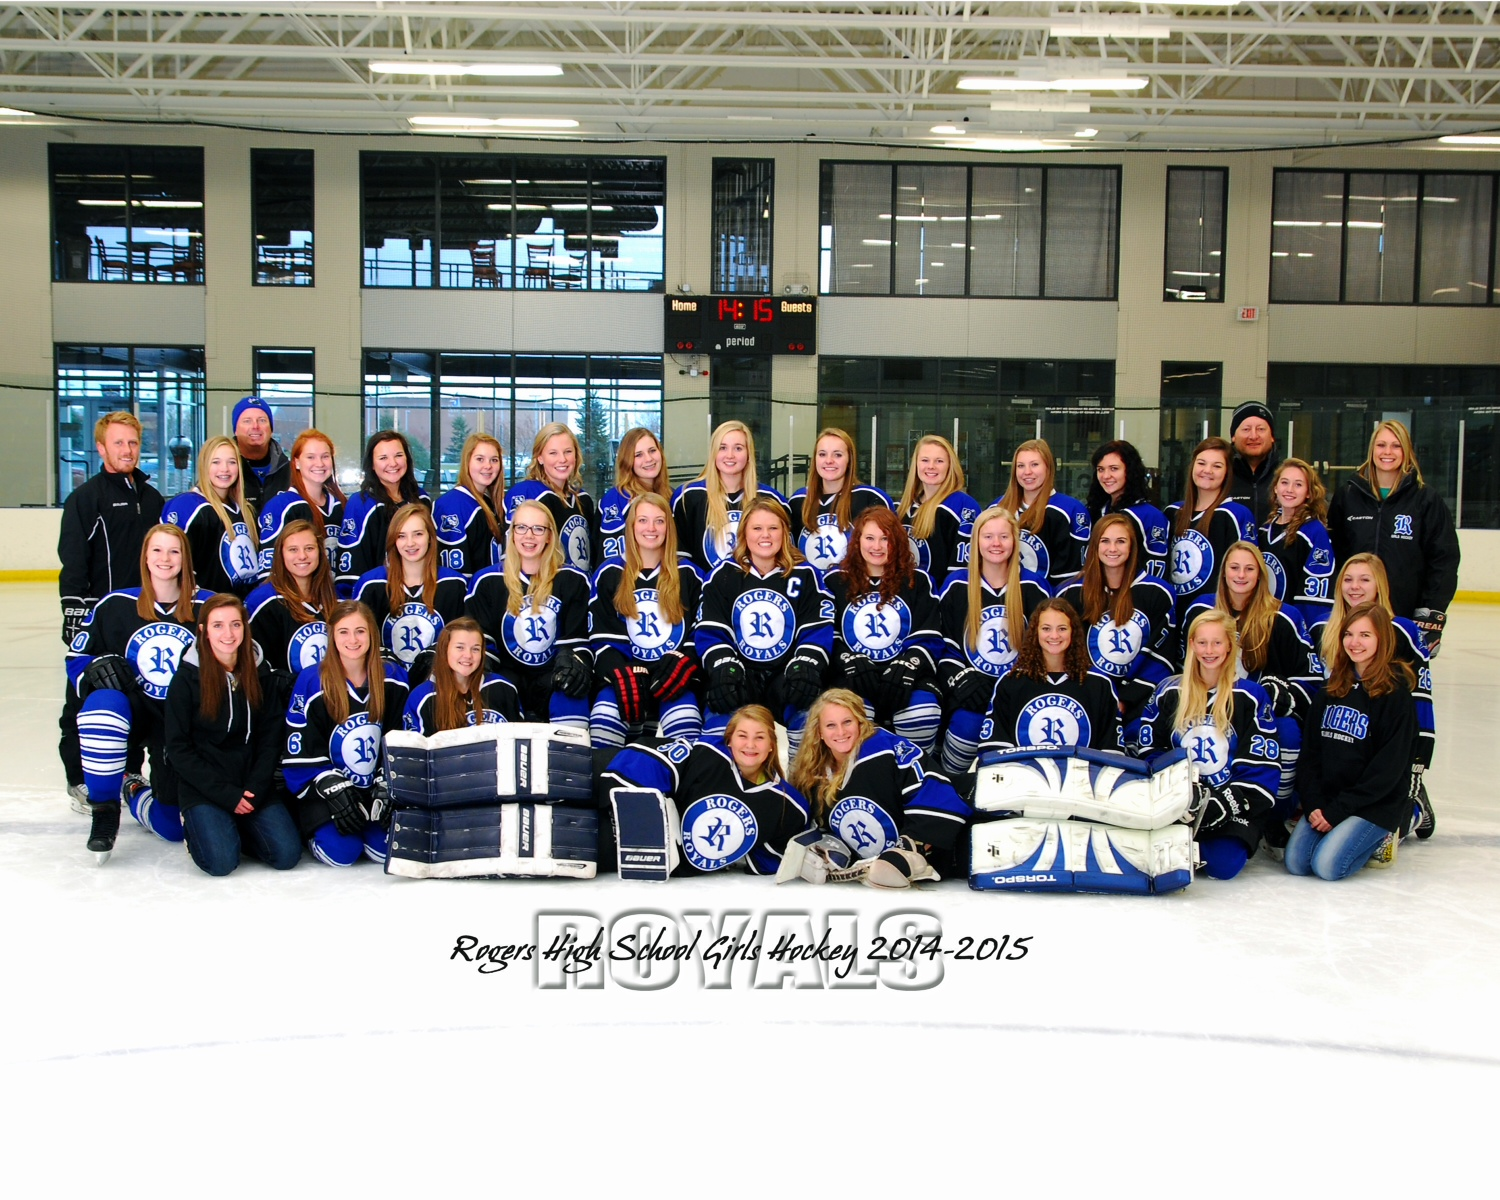 Girls having essex kent girls hockey pics dorm